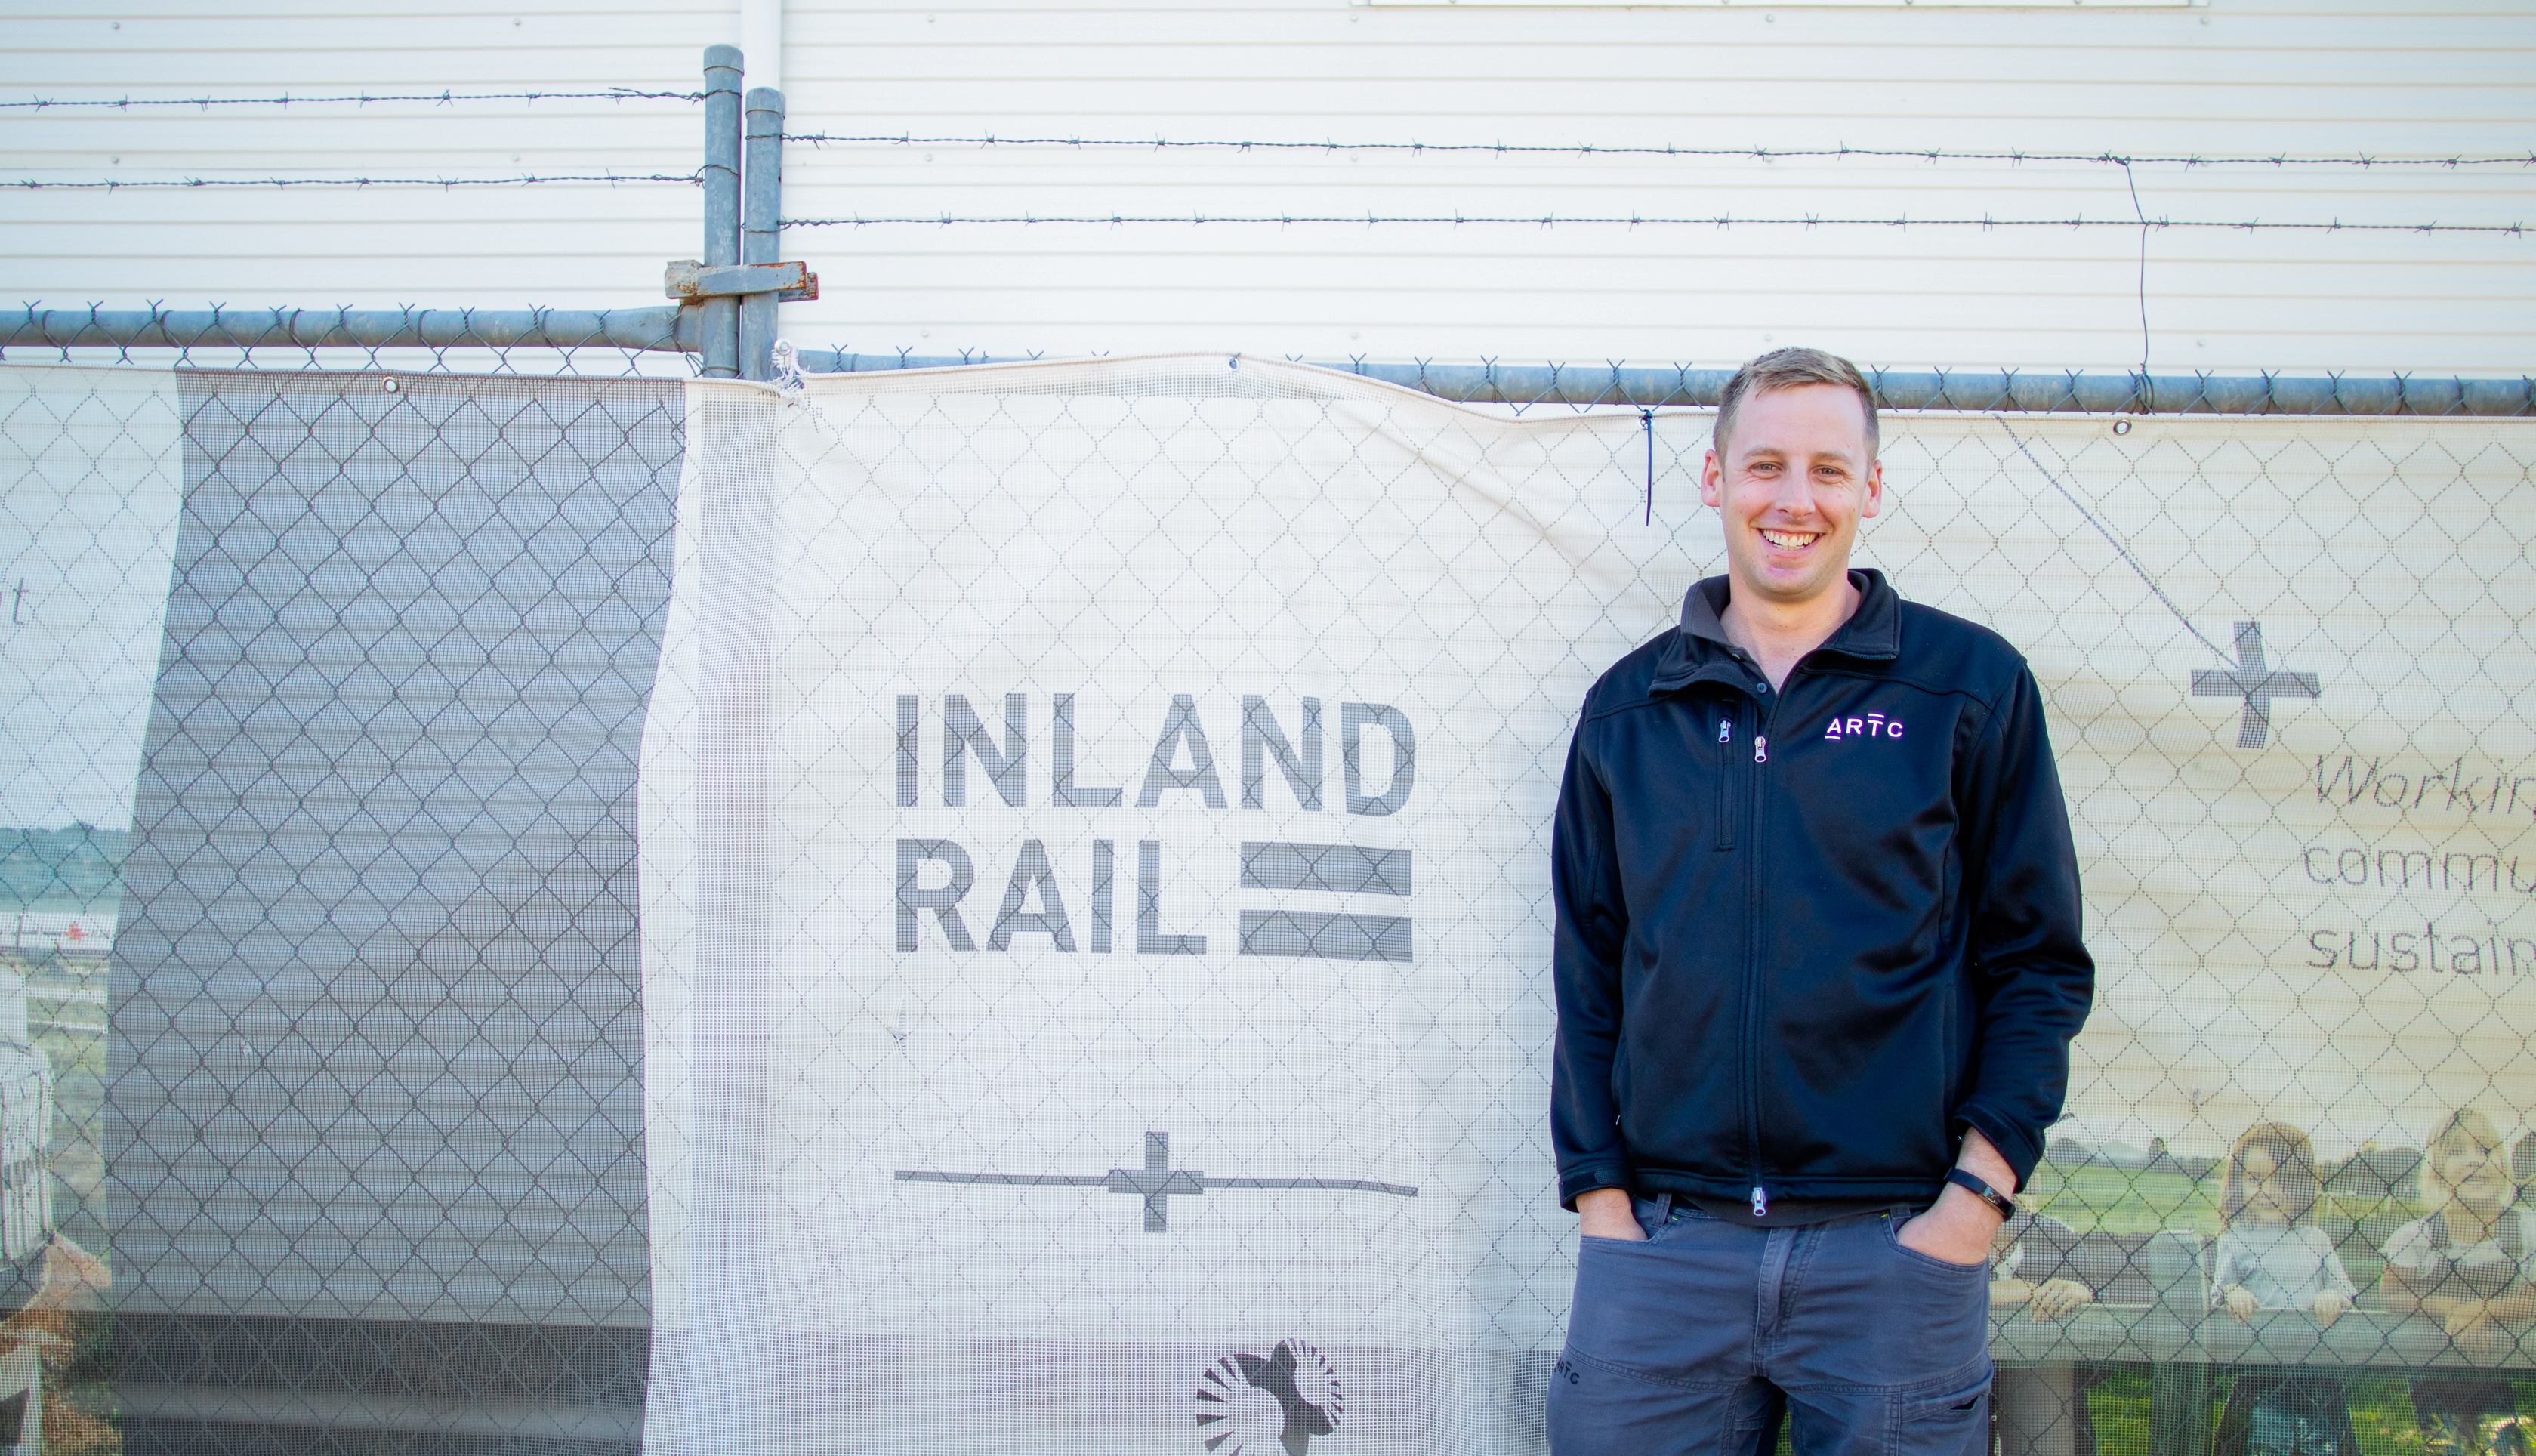 Image of Inland Rail team member near Parkes, NSW